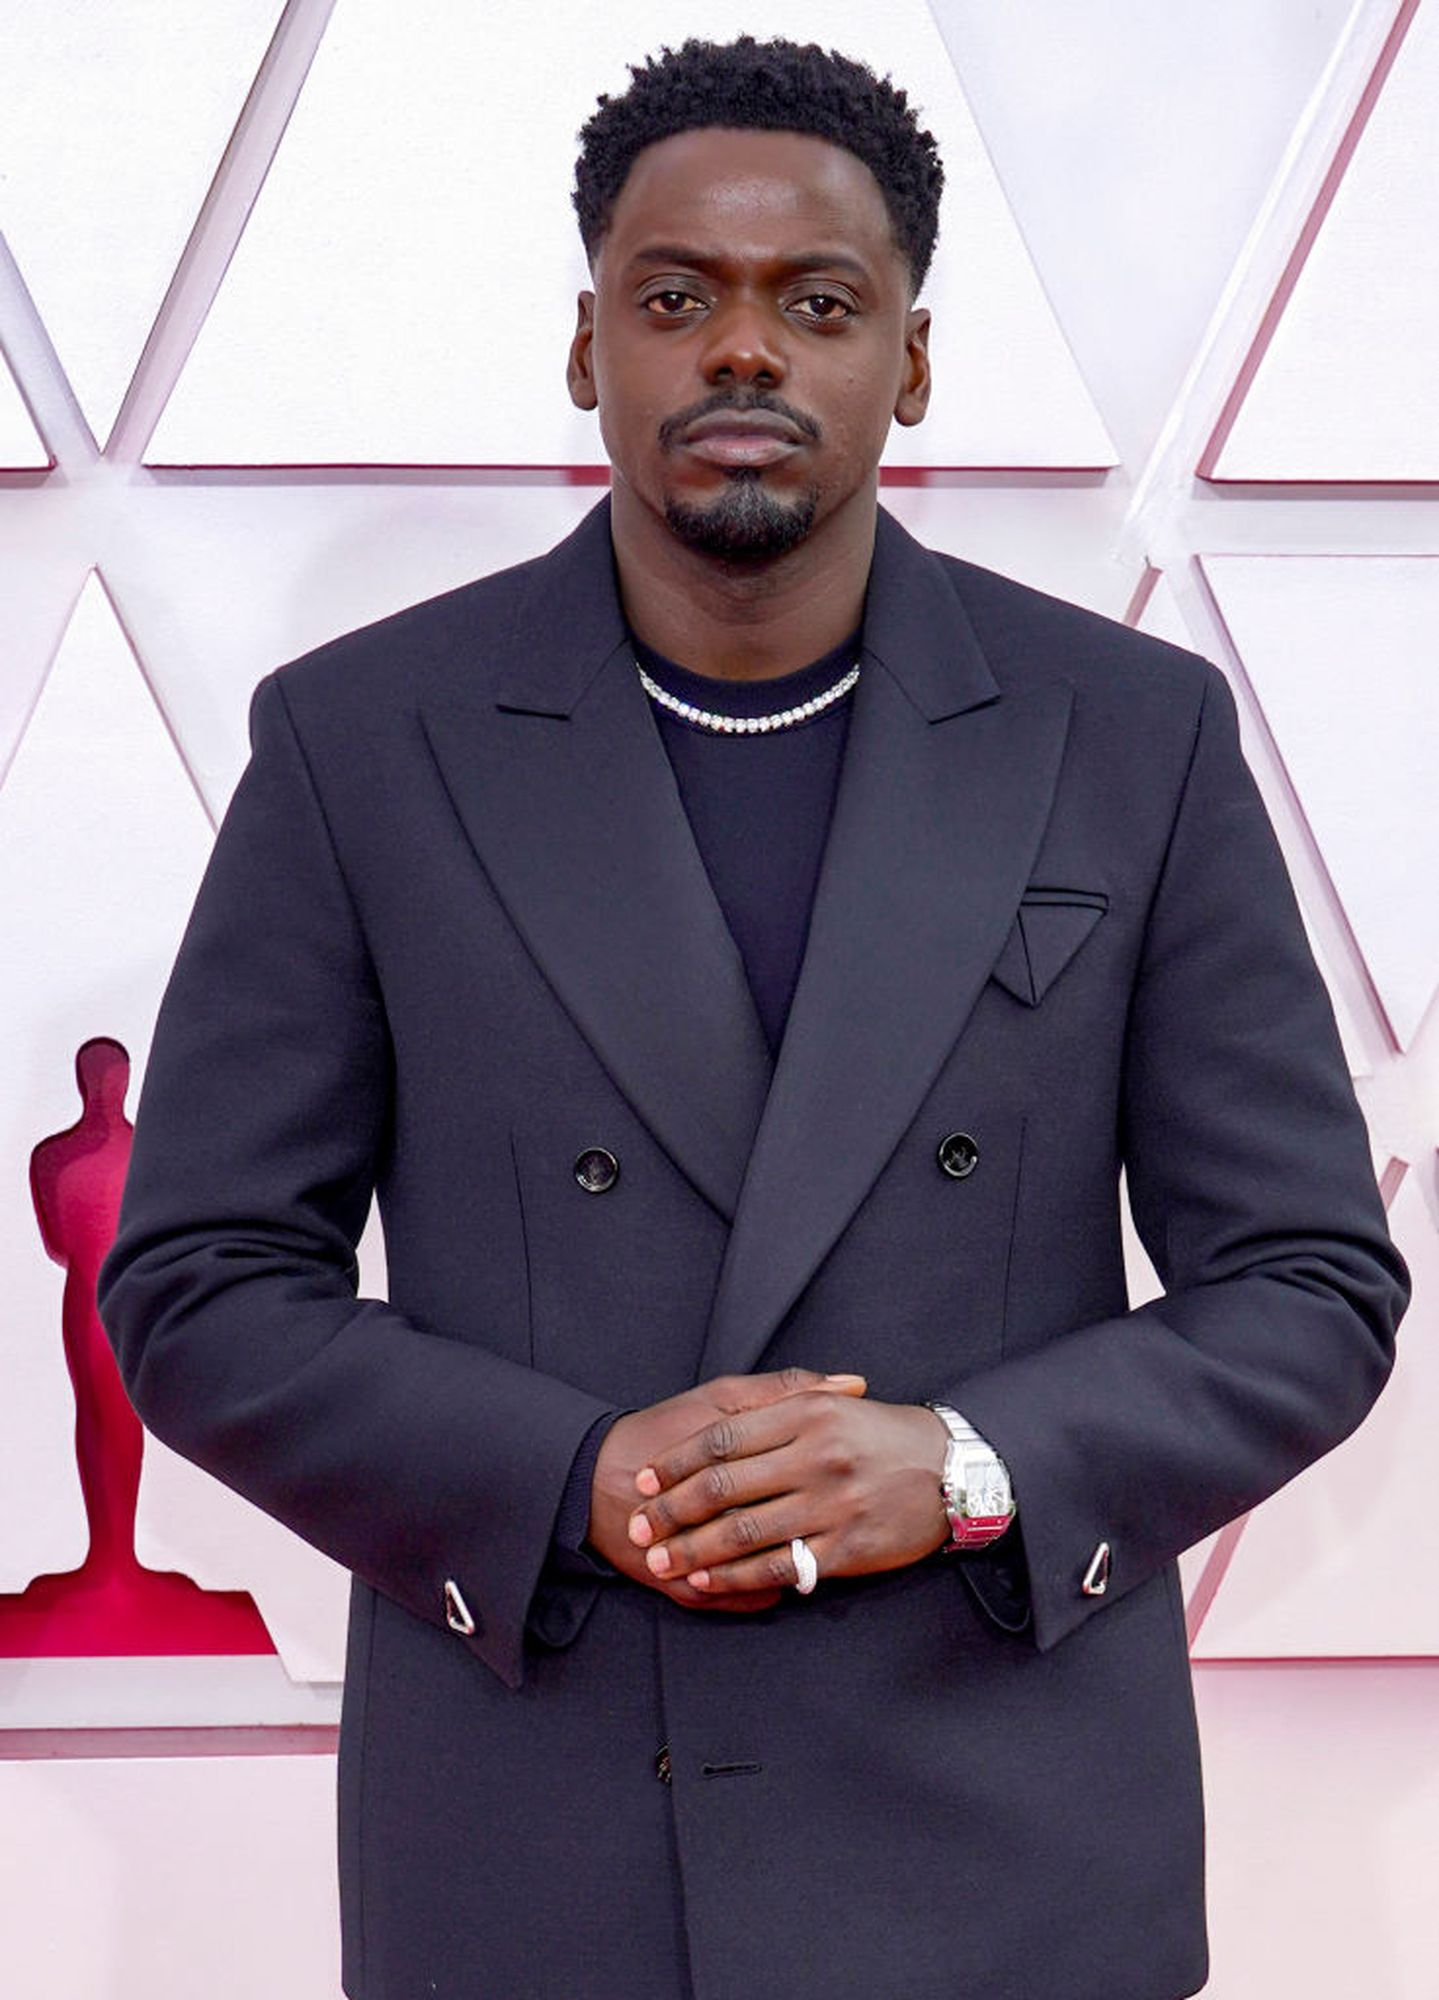 LOS ANGELES, CA - April 25: Daniel Kaluuya attends the 93rd Annual Academy Awards at Union Station on April 25, 2021 in Los Angeles, California.  (Photo by Chris Bisillo-Ball / Getty Images)